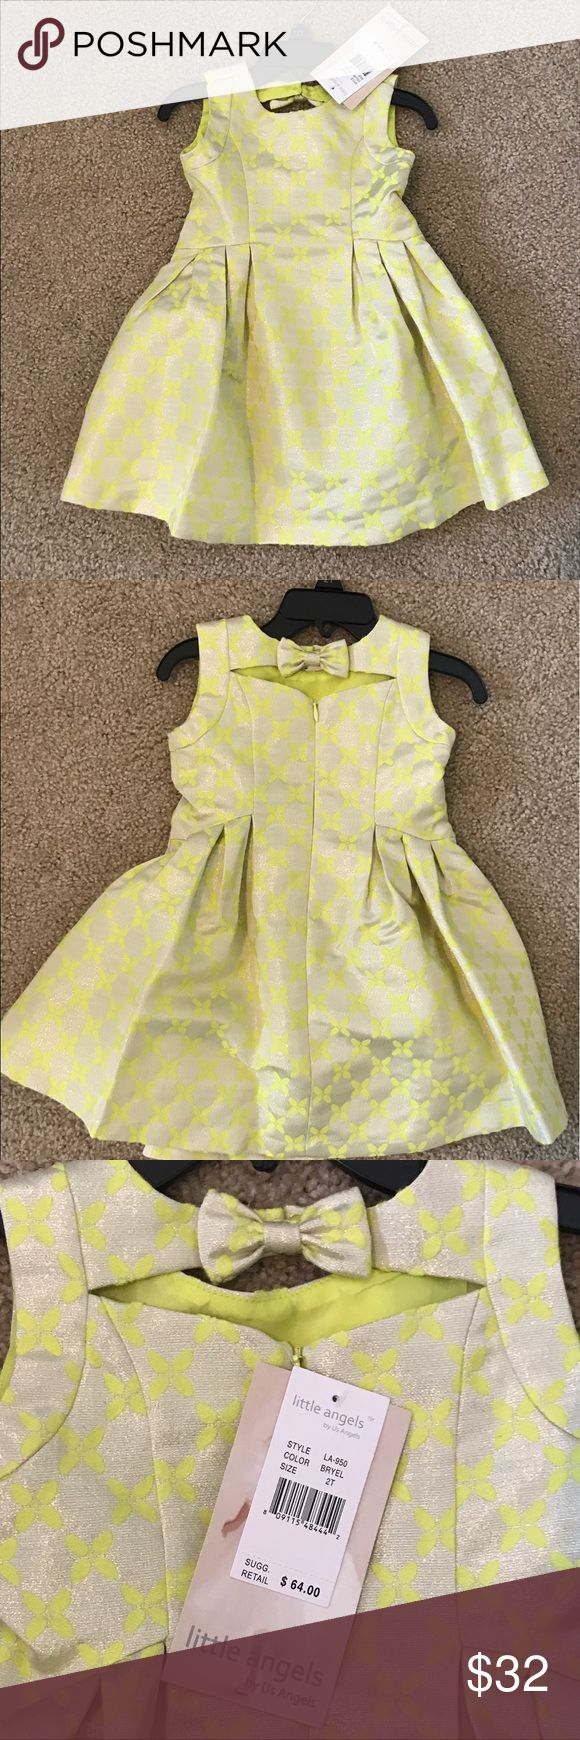 Little Angels Sleeveless Metallic Brocade Dress 2T Gorgeous toddler dress - Little Angels by Us Angels. Sleeveless brocade metallic dress with beautiful lemon yellow pattern on champagne fabric. Adorable bow at back neckline, fully lined. Size 2T. Us Angels Dresses Formal